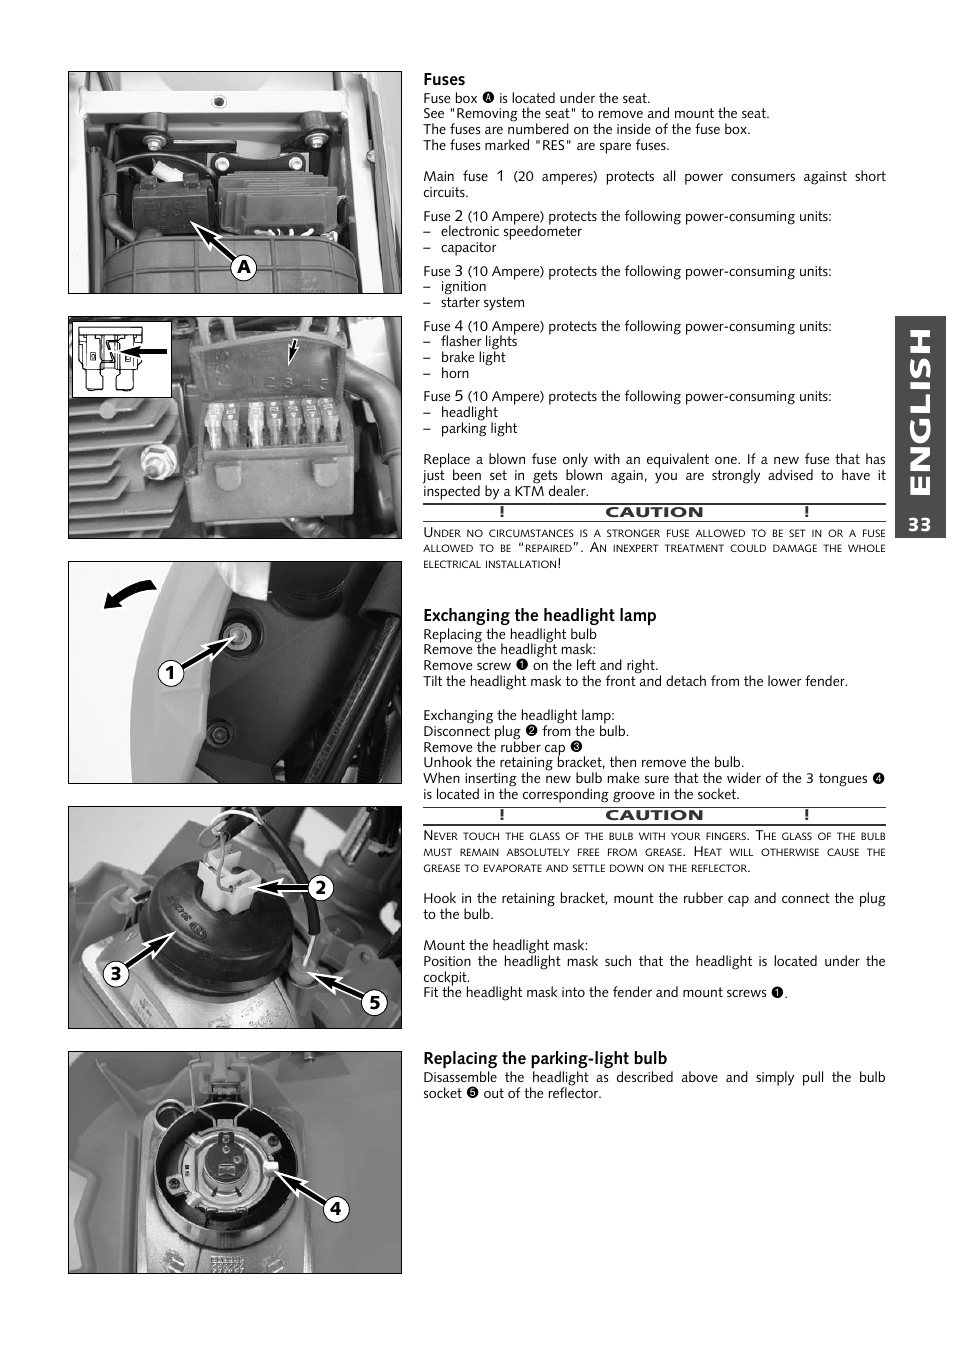 English Ktm 640 Lc4 Enduro User Manual Page 34 50 Fuse Box Removal